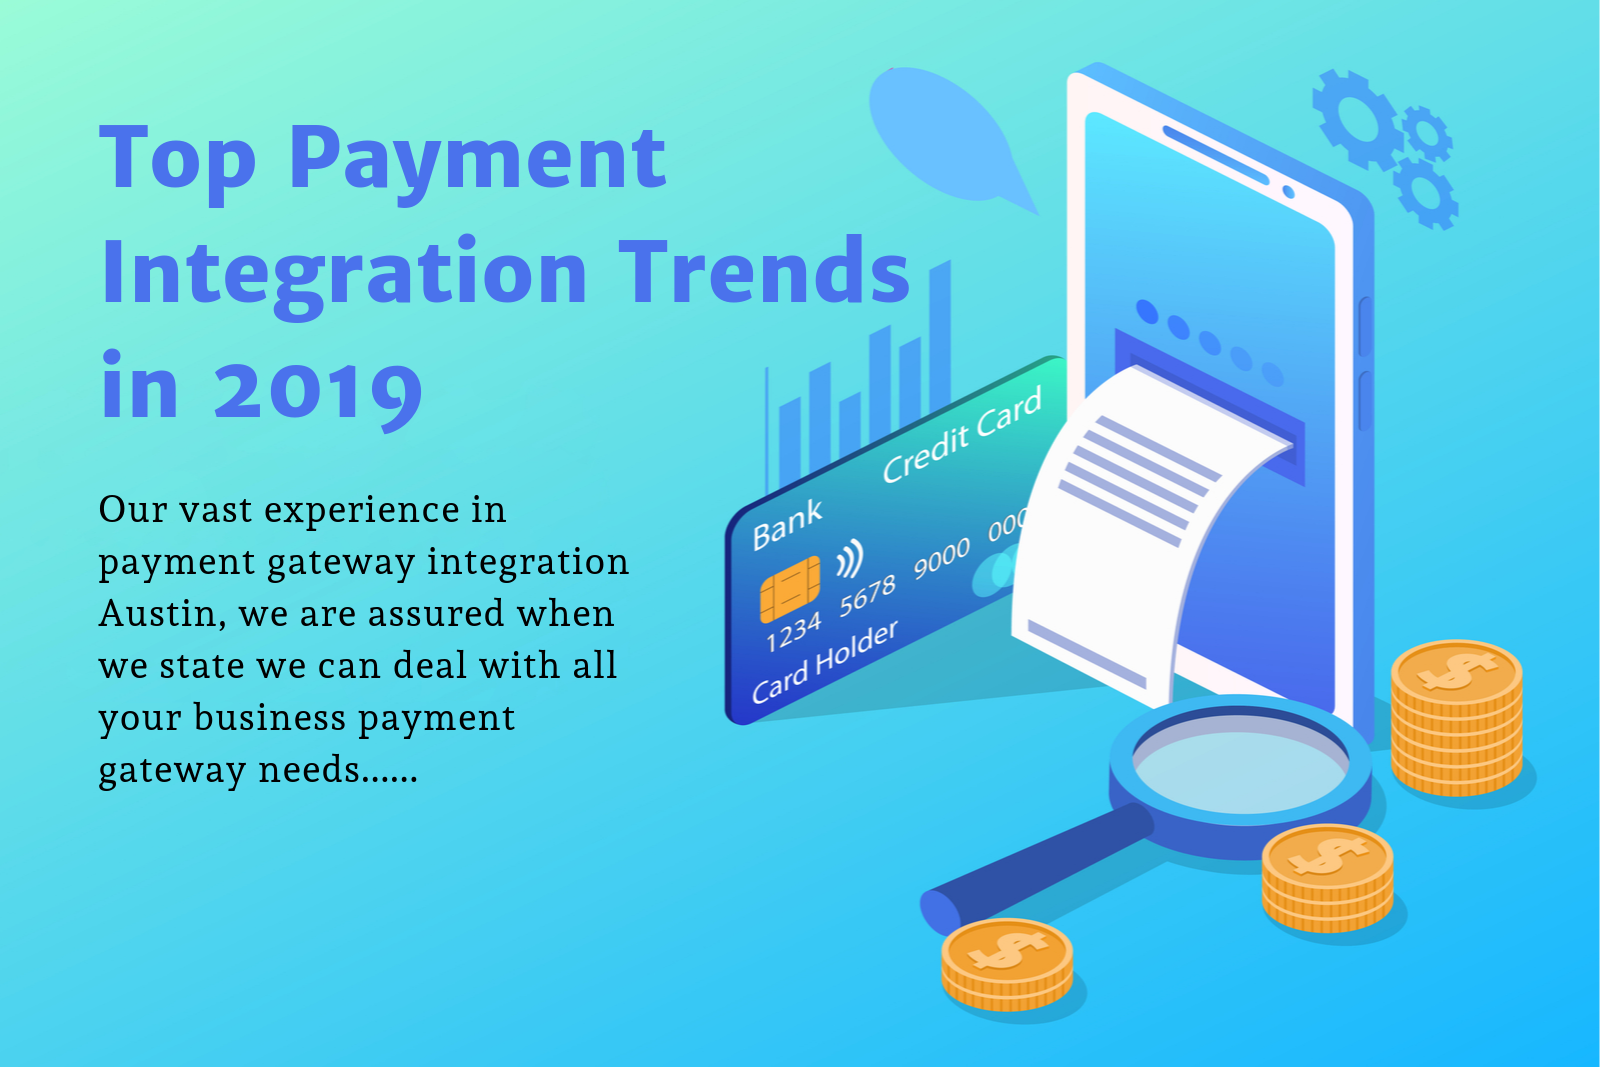 Top Payment Integration Trends in 2019